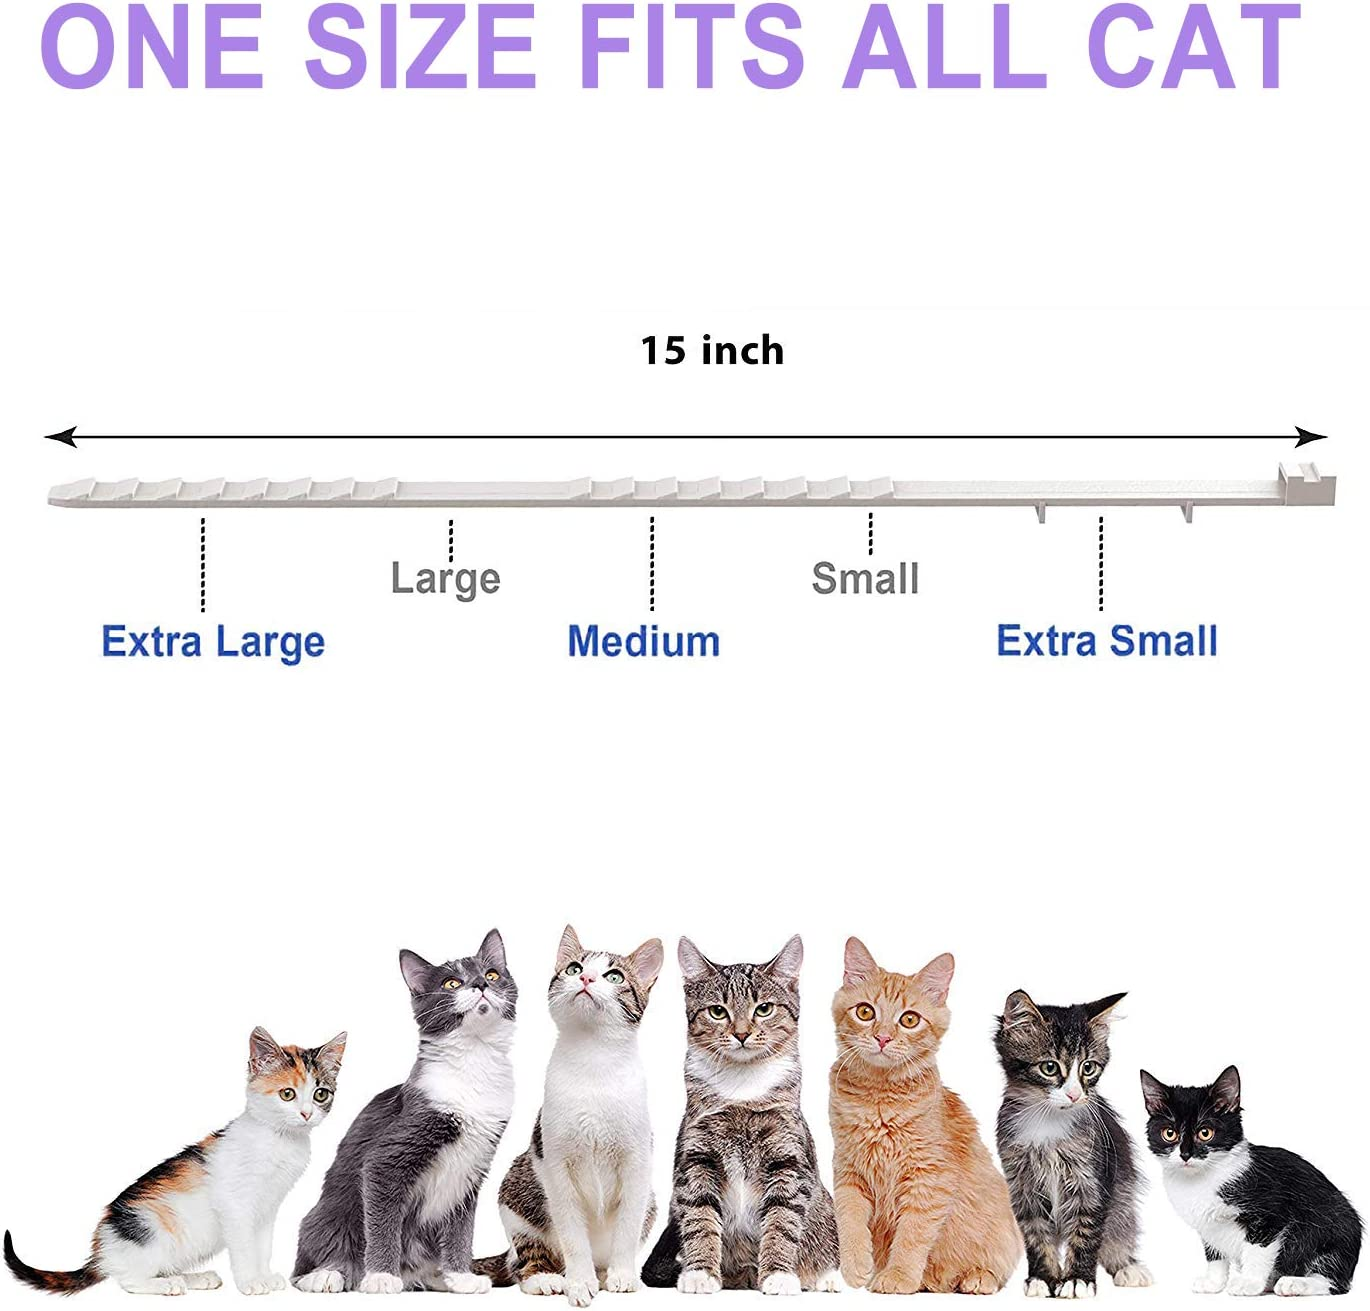 Fedciory Calming Collar for Cats, Adjustable Relieve Reduce Anxiety Pheromone Your Pet Lasting Natural Calm Collar Up to 15 Inch Fits Cat : Pet Supplies